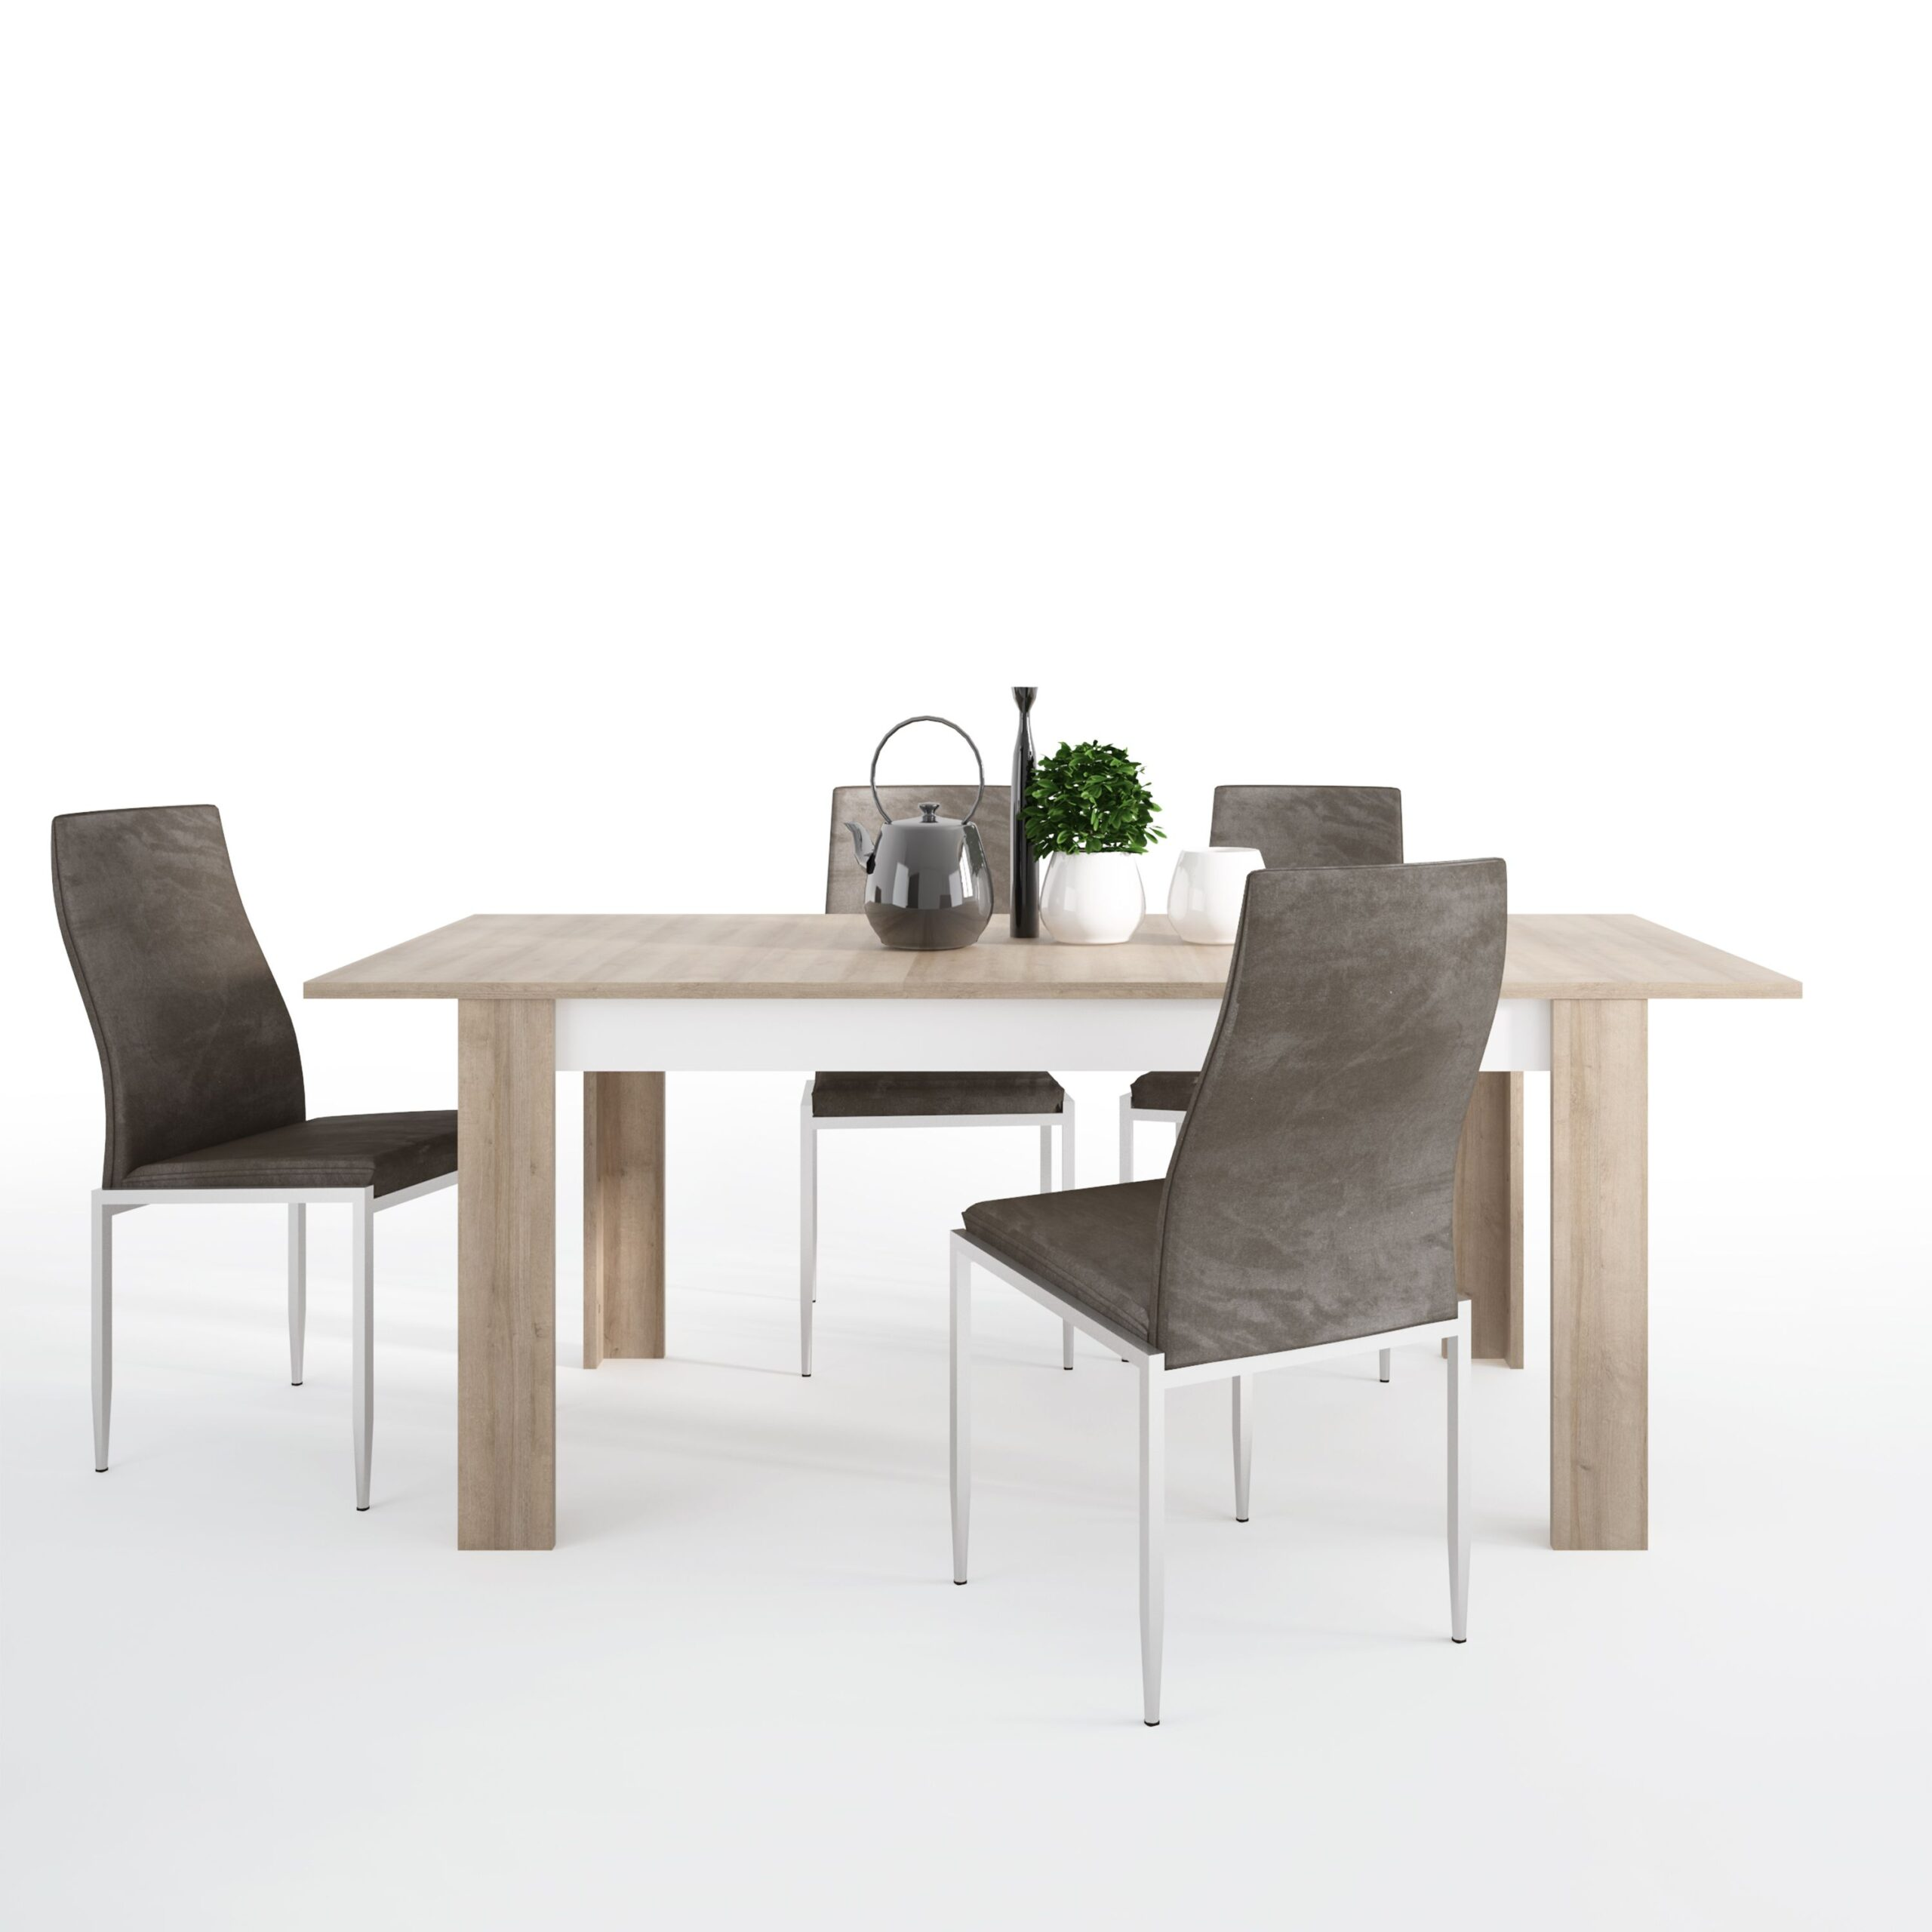 Lion Dining set package Lion Large extending dining table 160/200 cm + 4 Lillie High Back Chair Dark Brown.